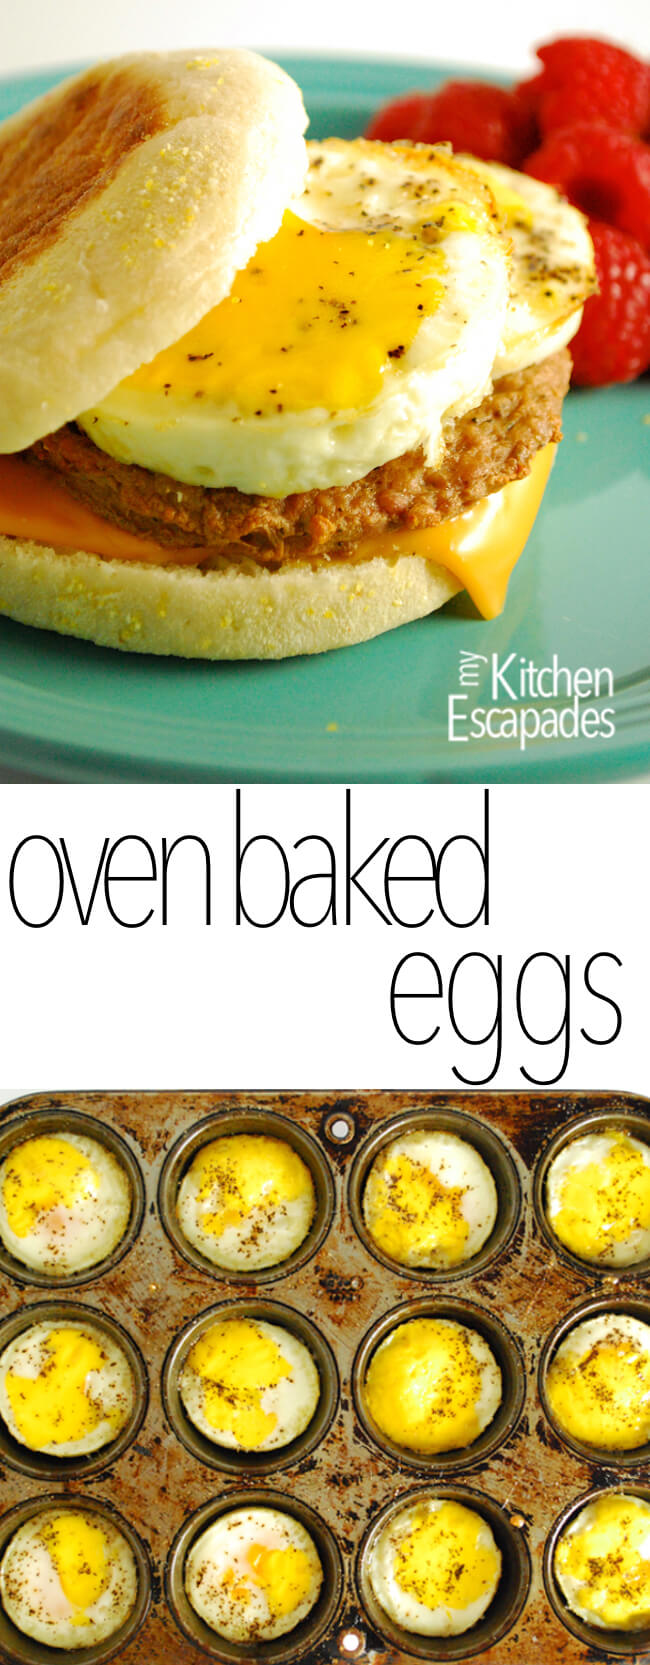 Freezer Breakfast Sandwich With Oven Baked Eggs